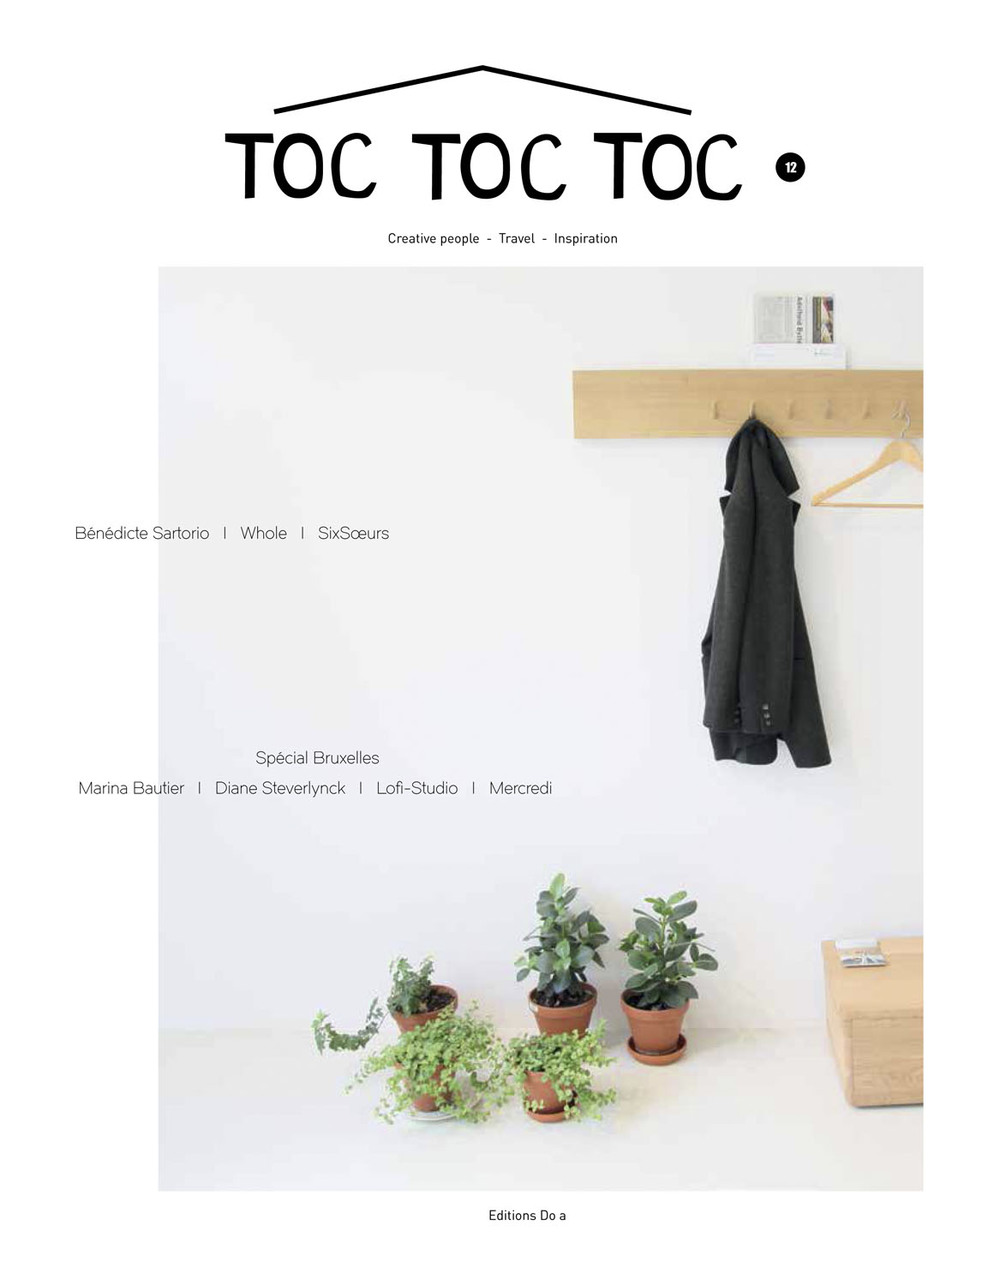 couv toctoctoc 12.jpg